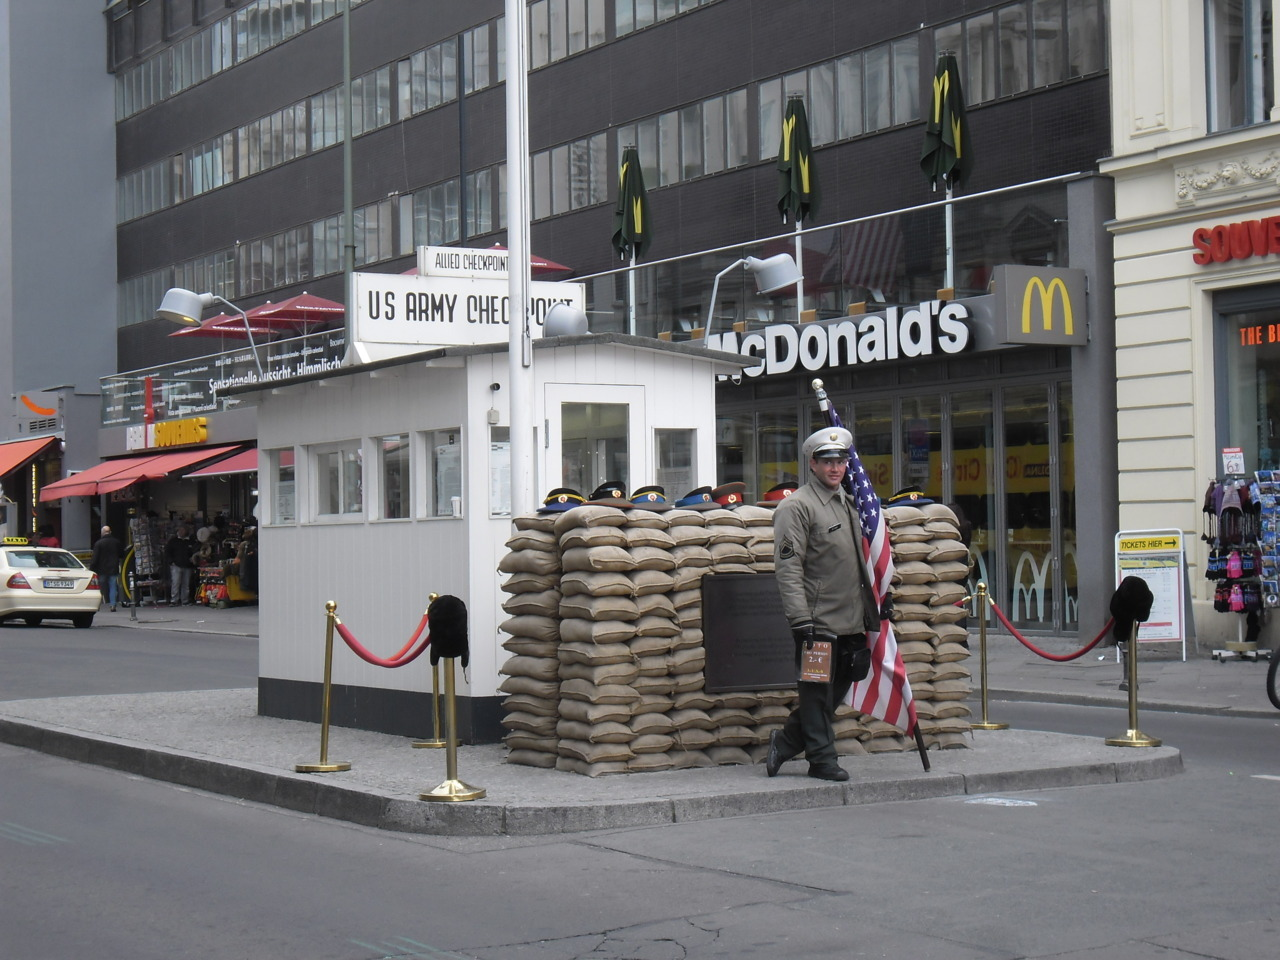 "paris-pluie:  Berlin Wall (Part I) Checkpoint Charlie in Berlin, Germany. Hopefully, you all recall the basics of the Berlin Wall from history class, but here is a recap if you'd like a refresher: After World War II, Germany was under the control of the Allies, who divided it in half. West Germany was a capitalist state and consisted of three zones under French, British, and American control respectively. East Germany was controlled by the Soviets and was a Communist state. Located deep inside East Germany was its capital city, Berlin. Like the country, Berlin was also divided in half. East Berlin was controlled wholly by the Soviets, like the rest of East Germany, but West Berlin was again divided into three zones: French, British, and American. Before the Wall, Berlin was like a hole through which people could escape to the West. The Americans were VERY eager to collect as many defectors as possible. Any East German could come to the American sector of West Berlin and request to leave the GDR (East Germany). The Americans would fly them to West Germany and set them and their families up with a job and temporary apartment. Easy. Millions of East Germans did exactly this. This caused a ""brain drain"" of Communism, with all the young, smart, and ambitious East Germans moving to the West. So, literally overnight in the early hours of 13 August 1961, the GDR officials set up a barbed-wire fence around the entire area of West Berlin. It was insecure and there were many escape attempts, so it was gradually replaced with the concrete wall we know today. Because people still needed to get into West Berlin, several checkpoints were set up where border crossings were possible. Each was run by whichever Allied power controlled the entering zone of West Berlin. The checkpoints were named by letter and referred to by the corresponding word of the NATO alphabet (Alpha, Bravo, etc). This is where the name ""Checkpoint Charlie"" comes from; it's just another way of saying ""Checkpoint C"". Checkpoint Charlie was a border crossing between the Soviet and American sectors, and it was the single East Berlin border crossing that was open to foreigners. So, any non-German wishing to enter East Berlin was obliged to enter through Checkpoint Charlie. This is why it became the most famous East-West checkpoint in Germany. Photo 1 : Sign entering the American zone from Friedrichstraße. Photo 2 : Passport check booth. Nowadays, the guy in front of it will pose with you in a photo for €5. For another €5, you can even get your passport stamped with East/West German border stamps. Photo 3 : View of Checkpoint Charlie from Friedrichstraße on the Soviet side. Note the photo of the American soldier looking out into the former Soviet zone. Photo 4 : Photo of Checkpoint Charlie from the American zone. You can see the ""last Kremlin flag"" hanging in tatters from the building. In fact, it's merely a facsimile; the real flag was taken down and is kept preserved somewhere. Photo 5 : The famous ""you are leaving the American zone"" sign. Personal anecdote: my grandfather moved to Berlin in 1990, just after the reunification of Germany. His first visit to the city was in October 1989… less than one month before the wall came down on 9 November 1989! He was among the very last people to legally pass through Checkpoint Charlie! (Photos taken by me, 13 May 2012.)"